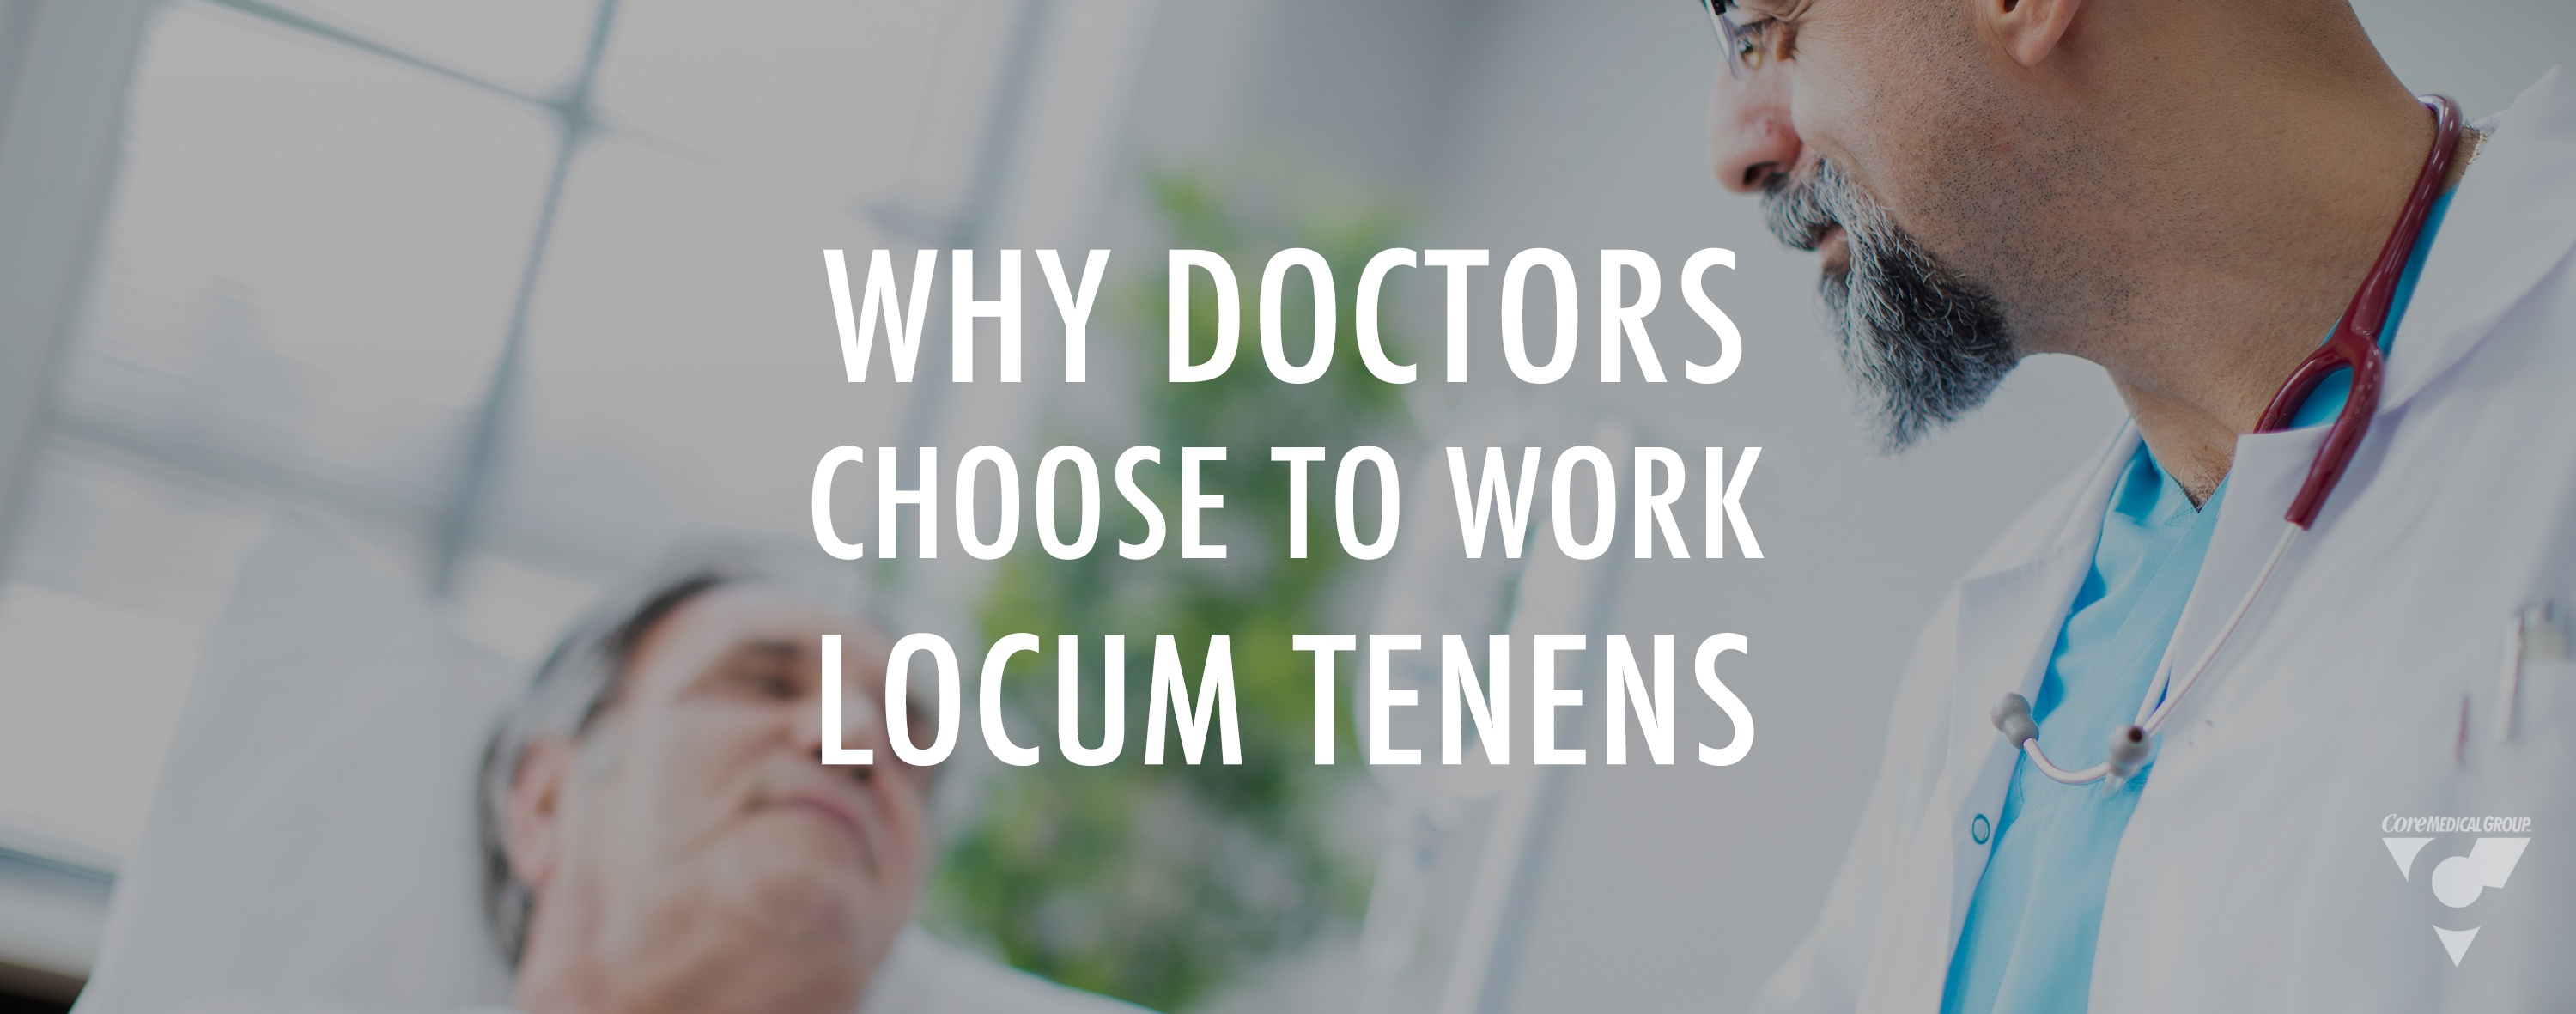 CMG_Blog_Featuredimages_LocumTenens_WhyDoctorsChoosetoWorkLocumTenens_Blog_R1